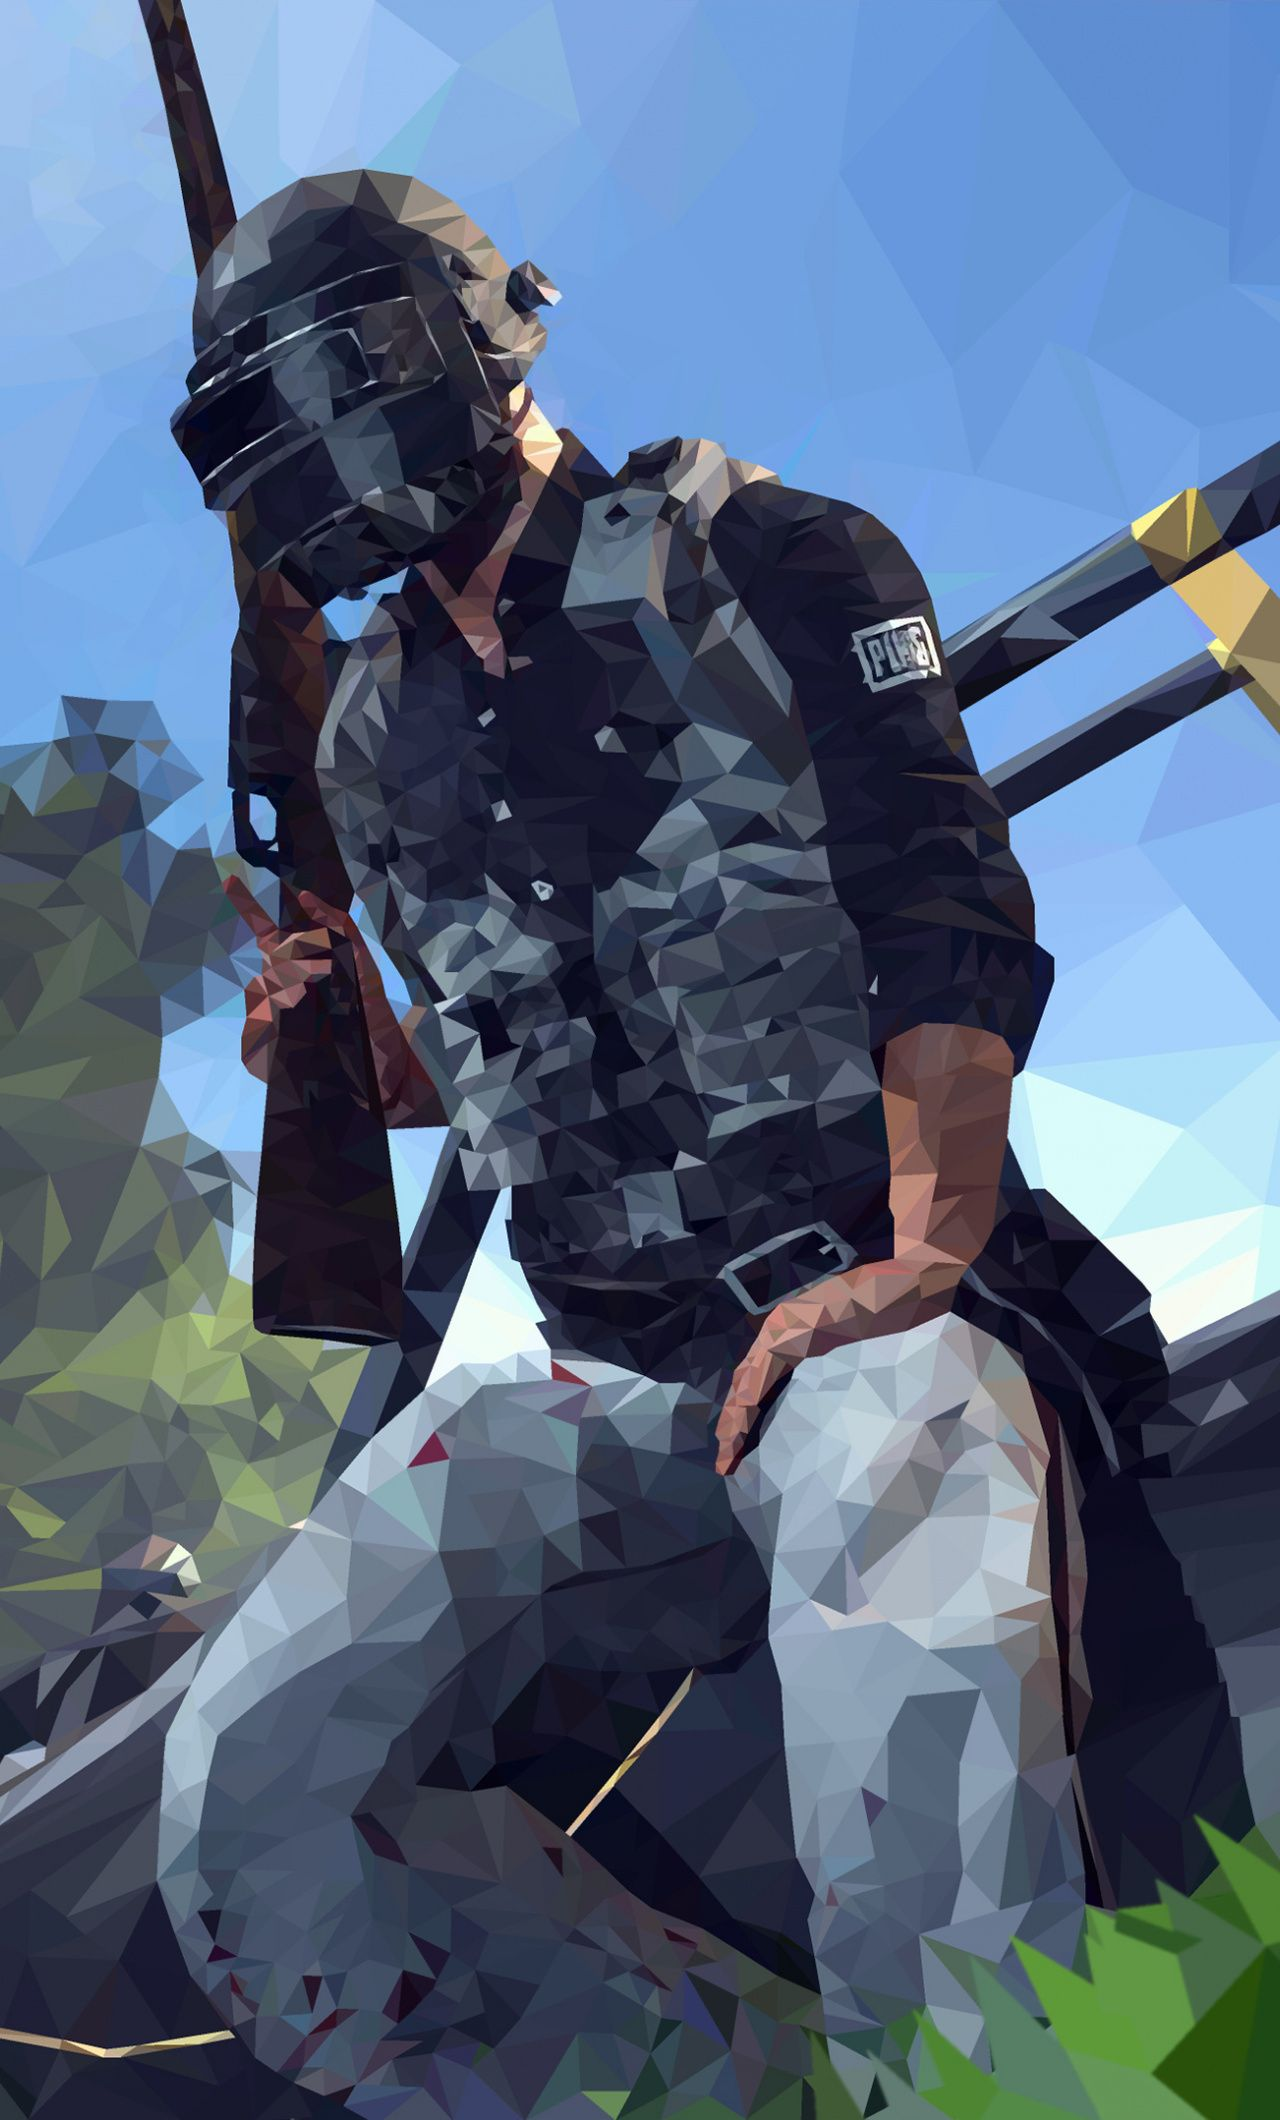 Pubg Video Game Low Poly Helmet Guy Artwork 1280x2120 Wallpaper Game Wallpaper Iphone Android Phone Wallpaper Hd Phone Wallpapers